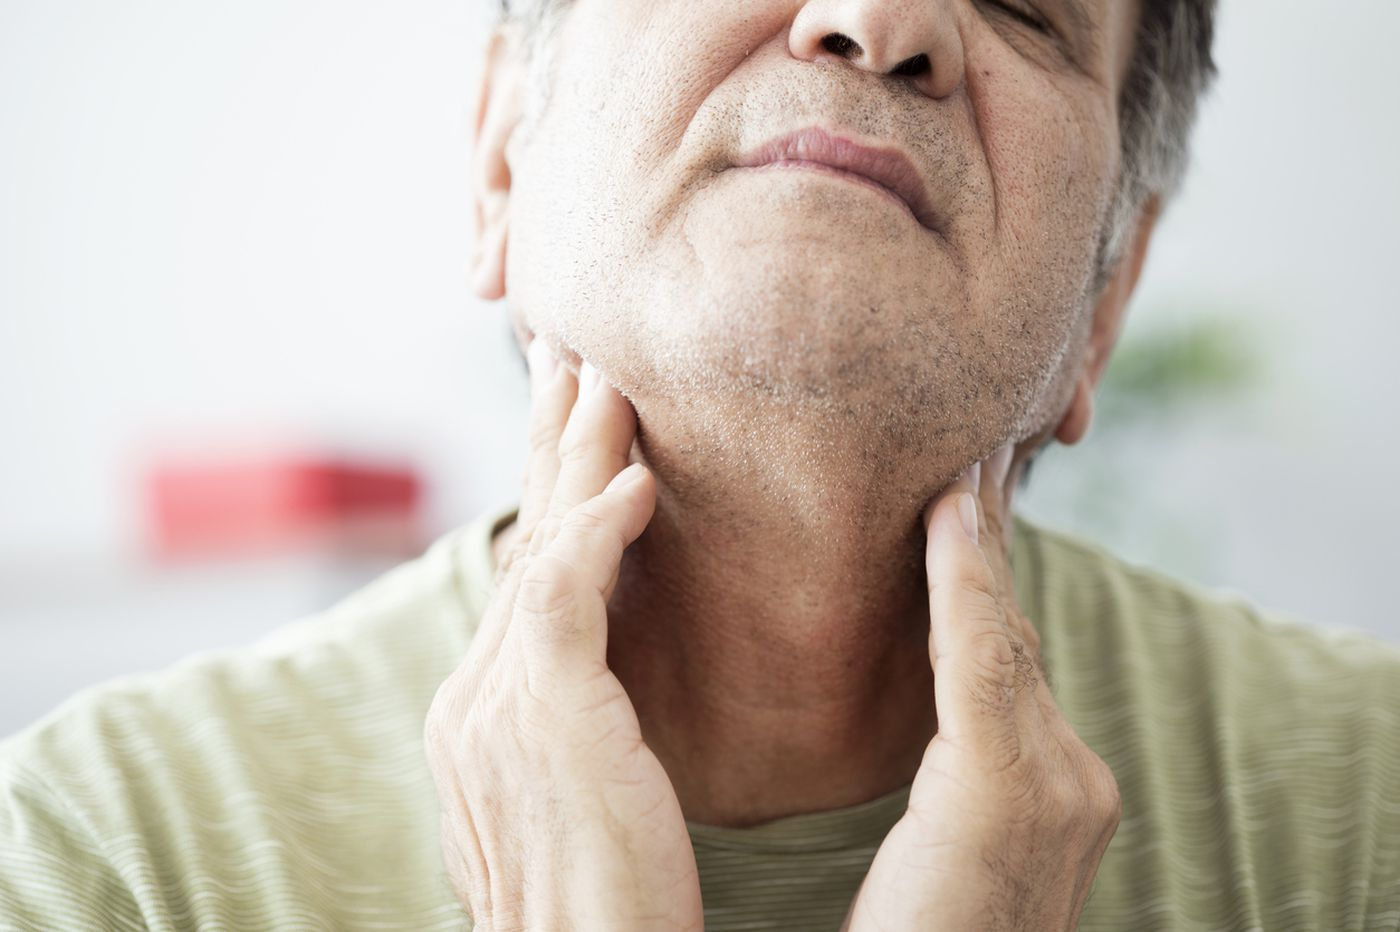 Medical Mystery: What caused old man's swallowing trouble?